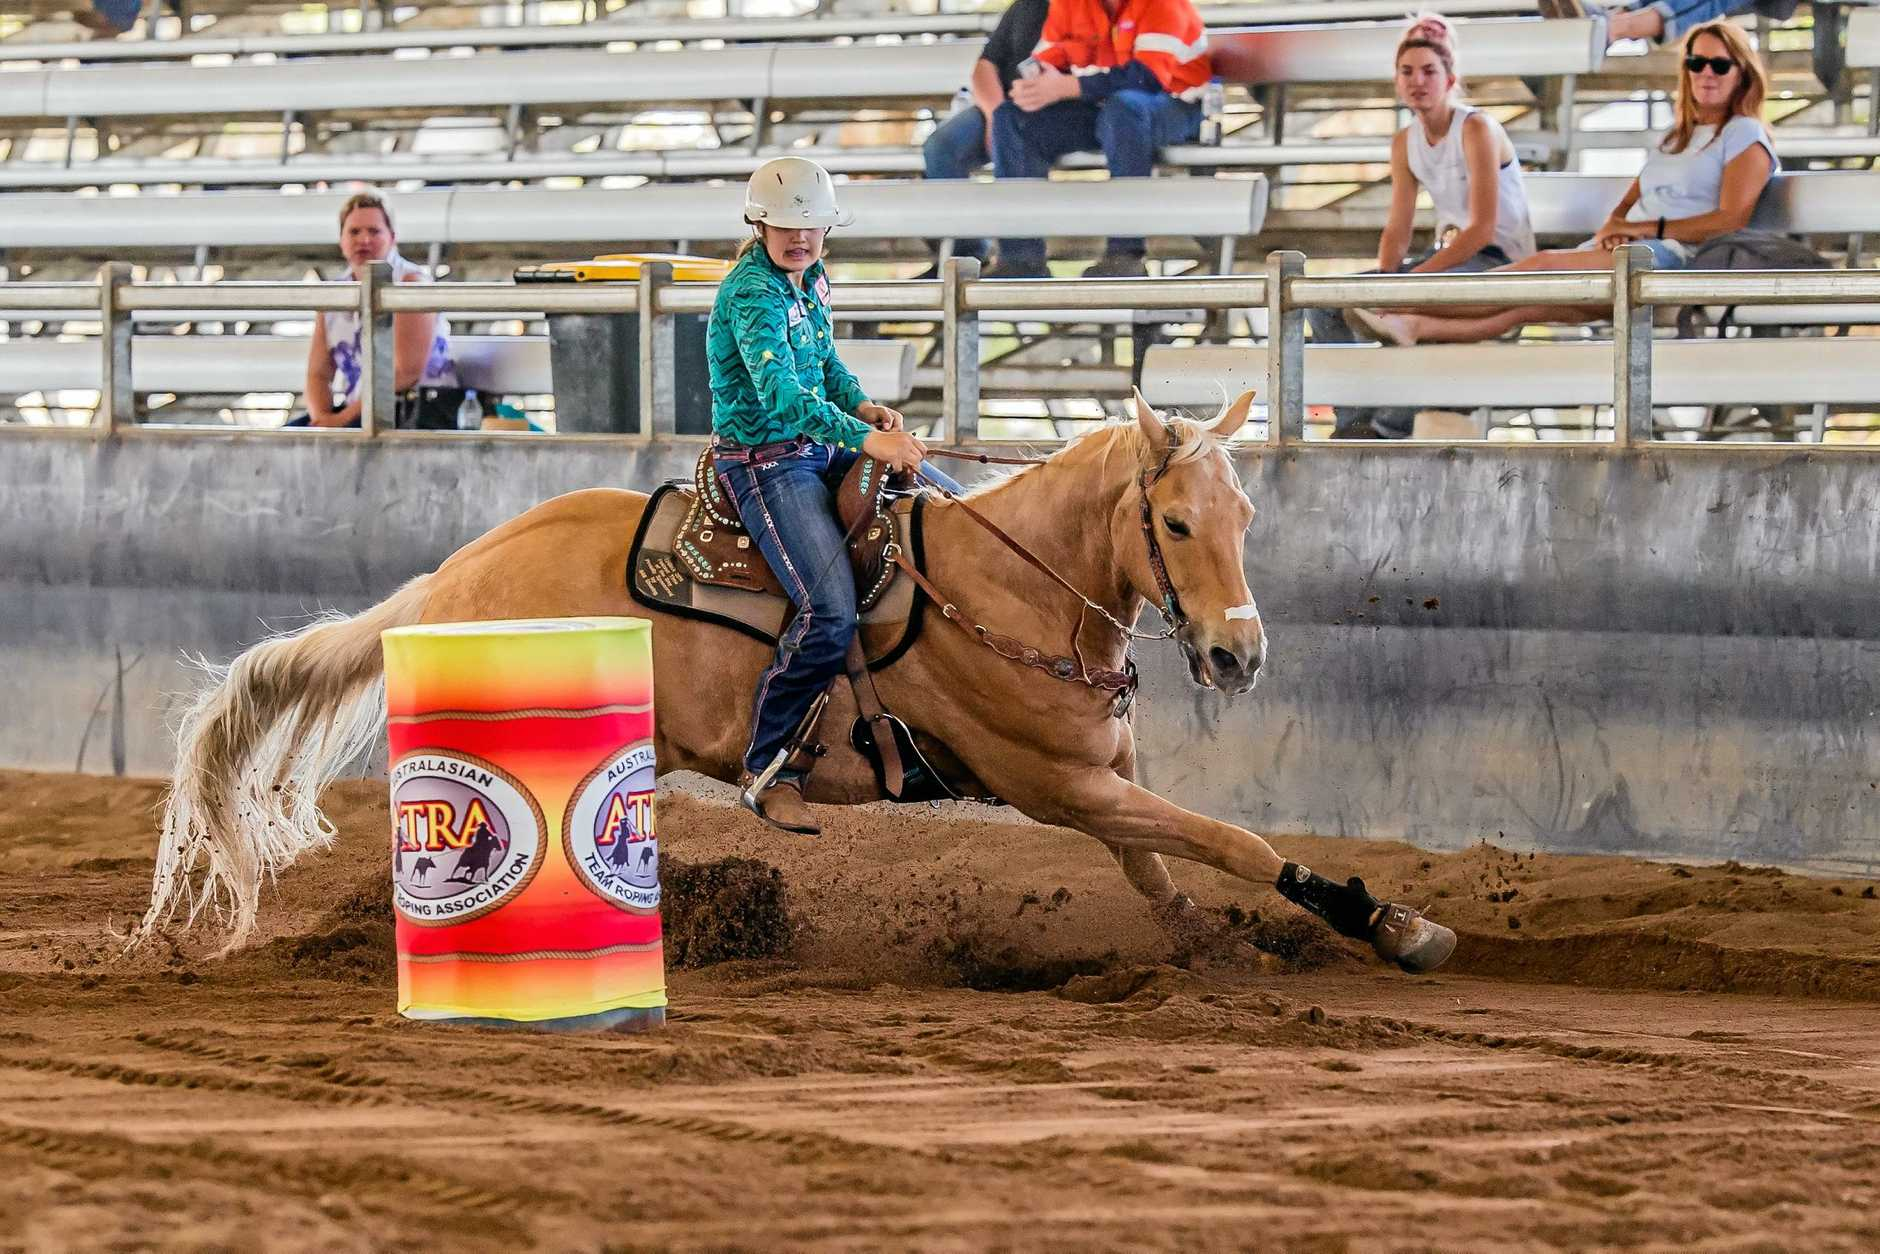 Maddie Caban placed fourth in the 13-17 Years Barrel Race with a time of 17.284 seconds.